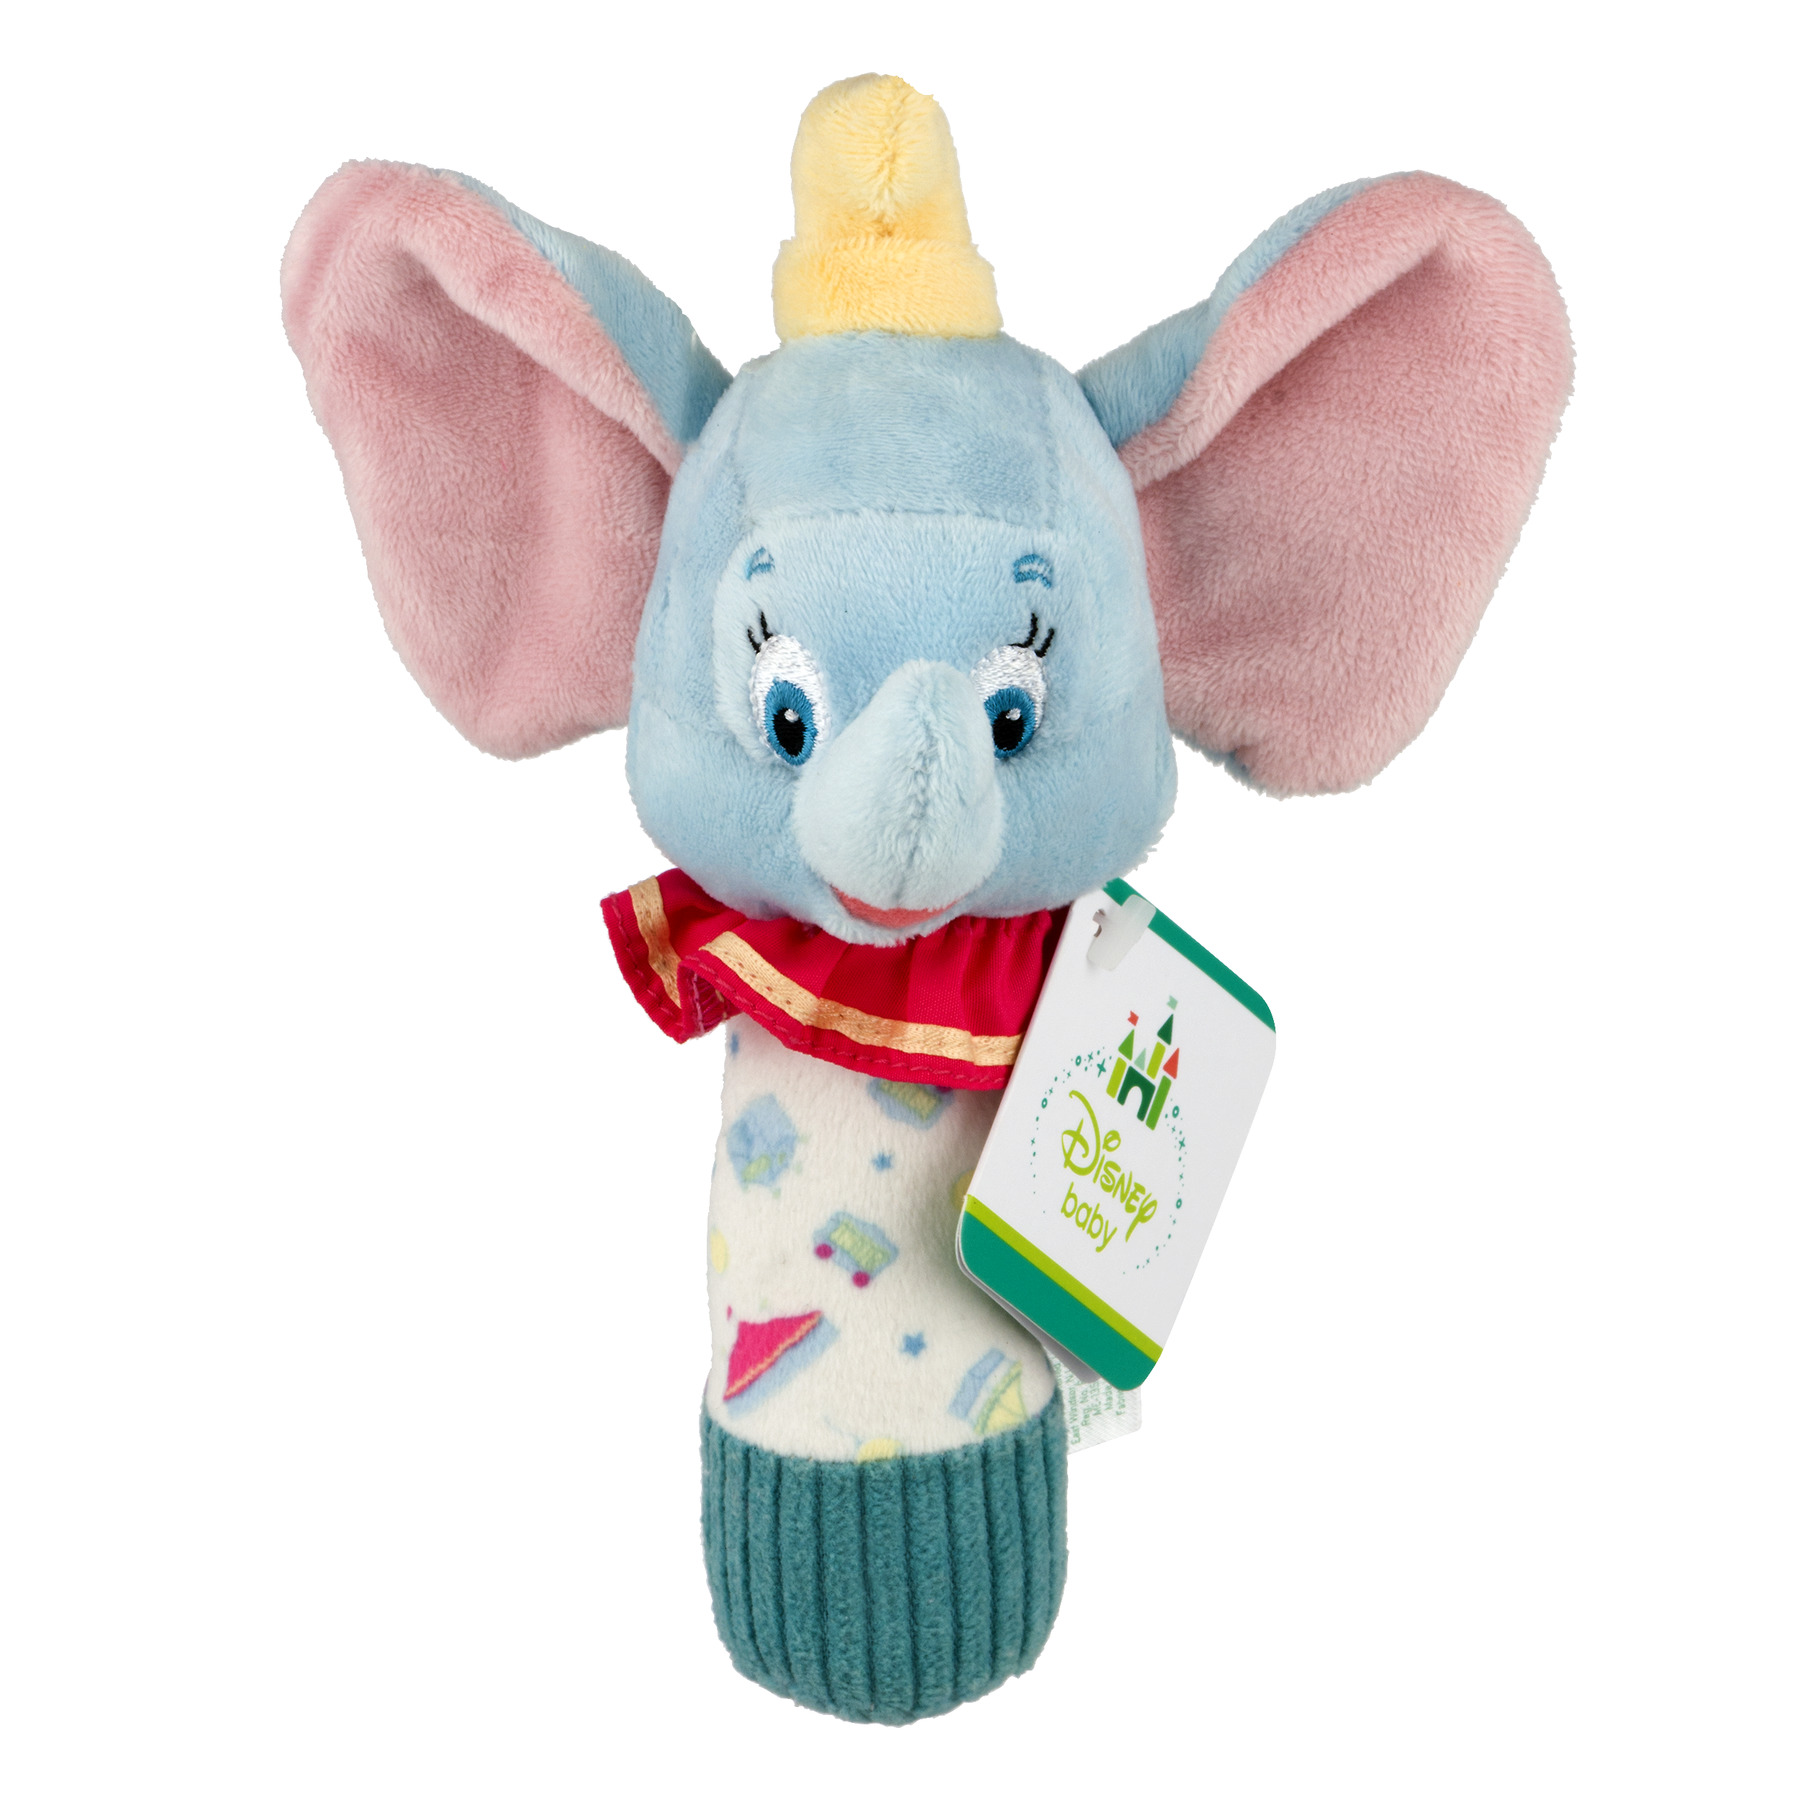 Disney Baby Dumbo Rattle, 1.0 CT